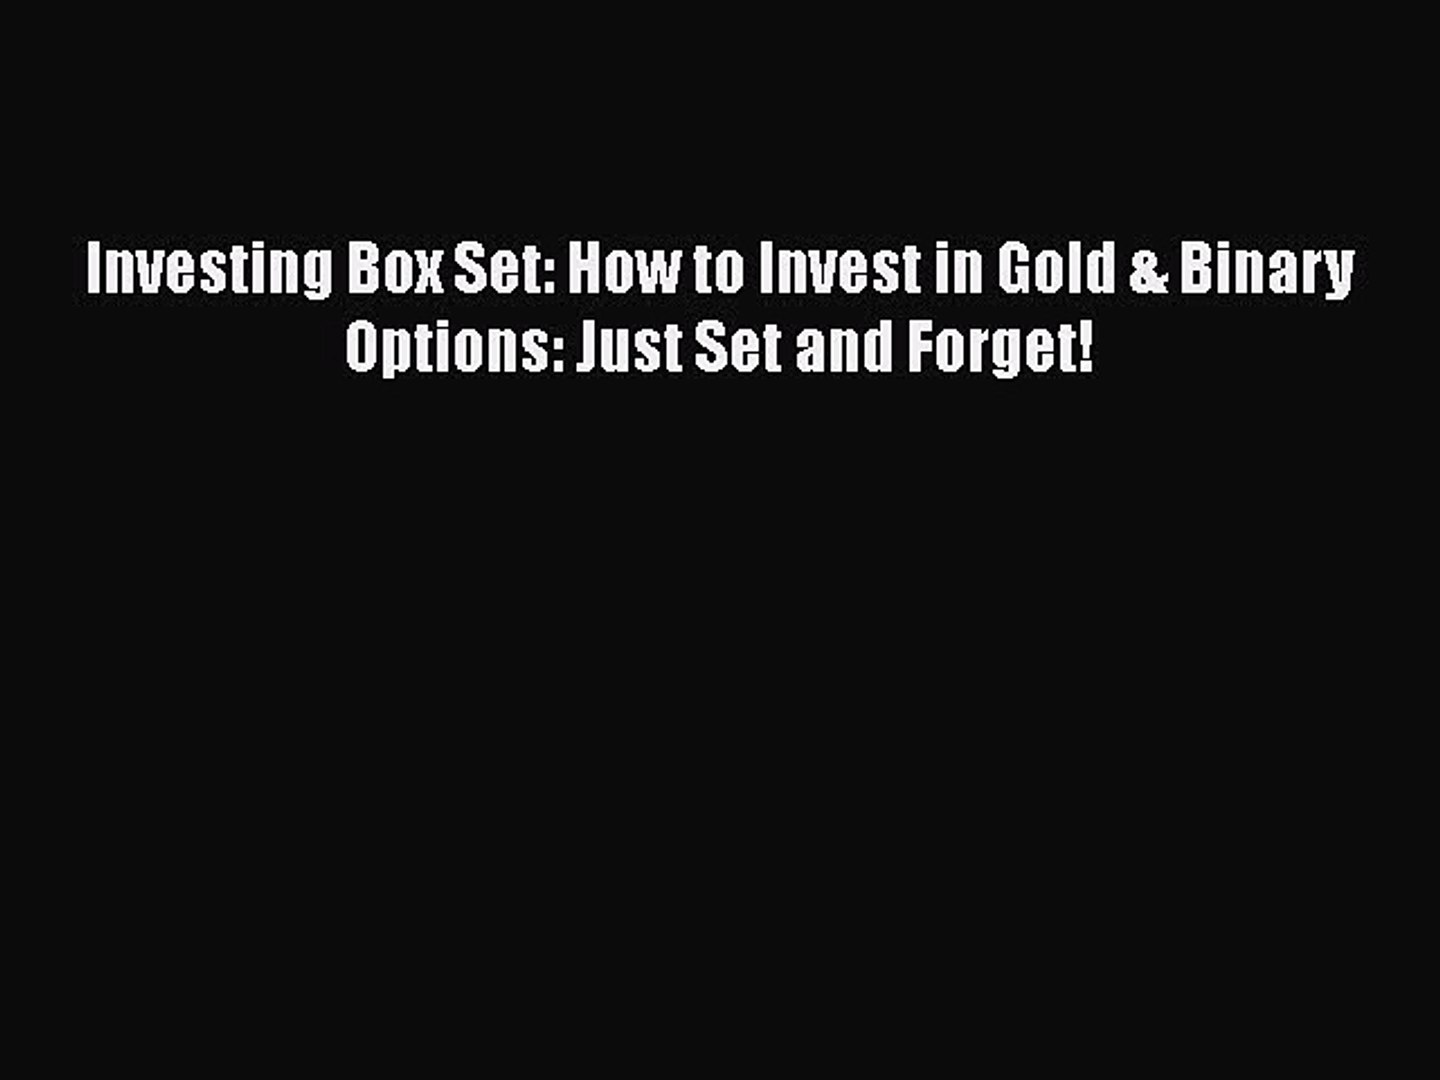 [Read book] Investing Box Set: How to Invest in Gold & Binary Options: Just Set and Forget!